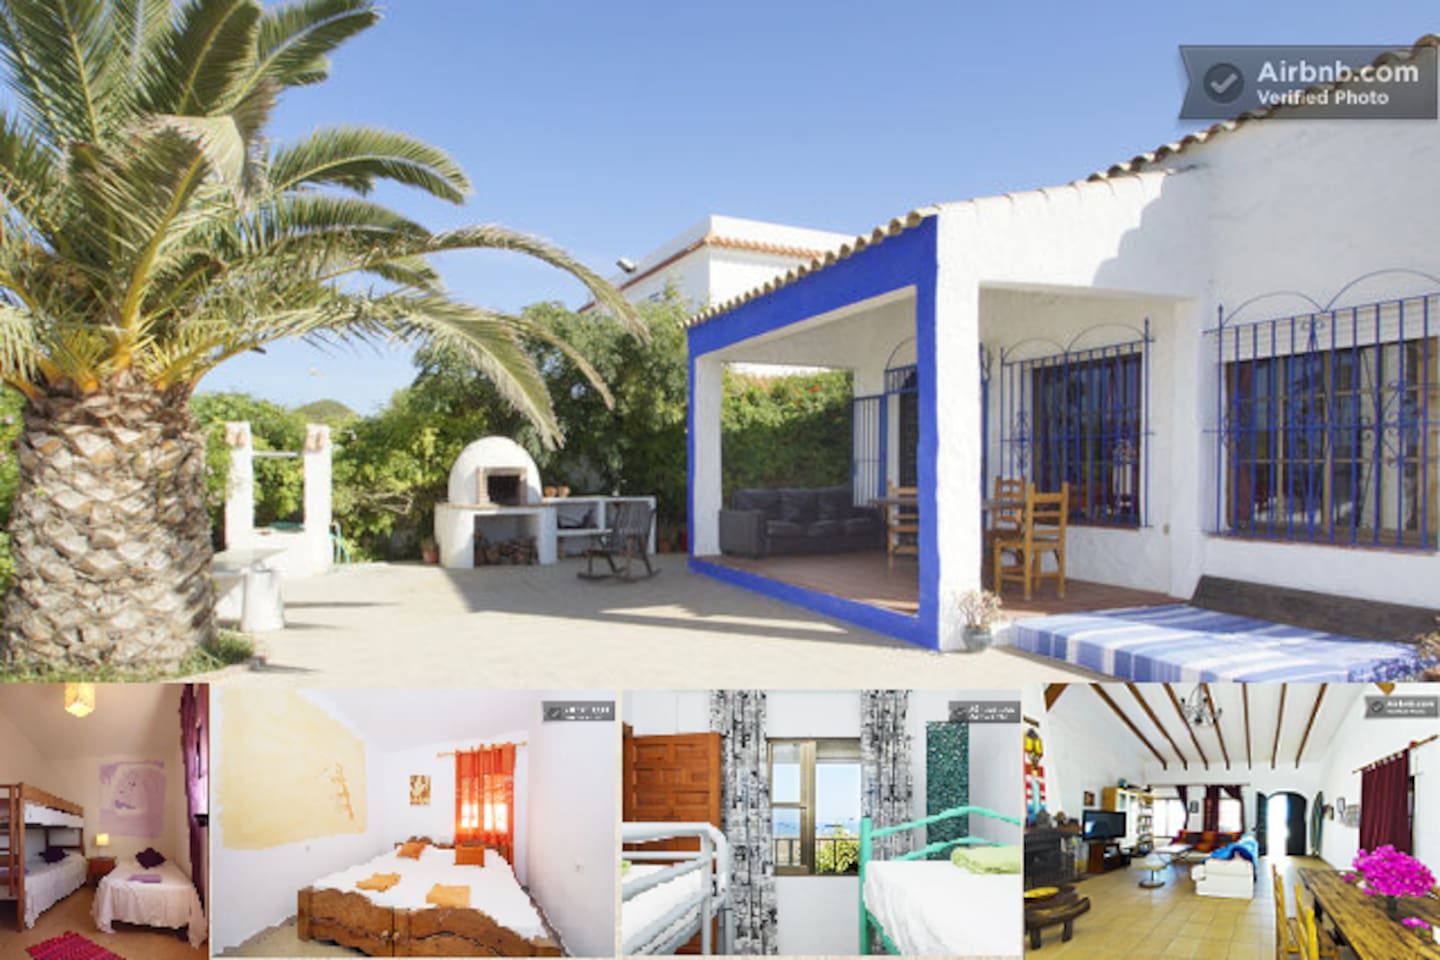 The beach front villa with 4 bedrooms, 2 bathrooms, a big salon and fully equipped kitchen